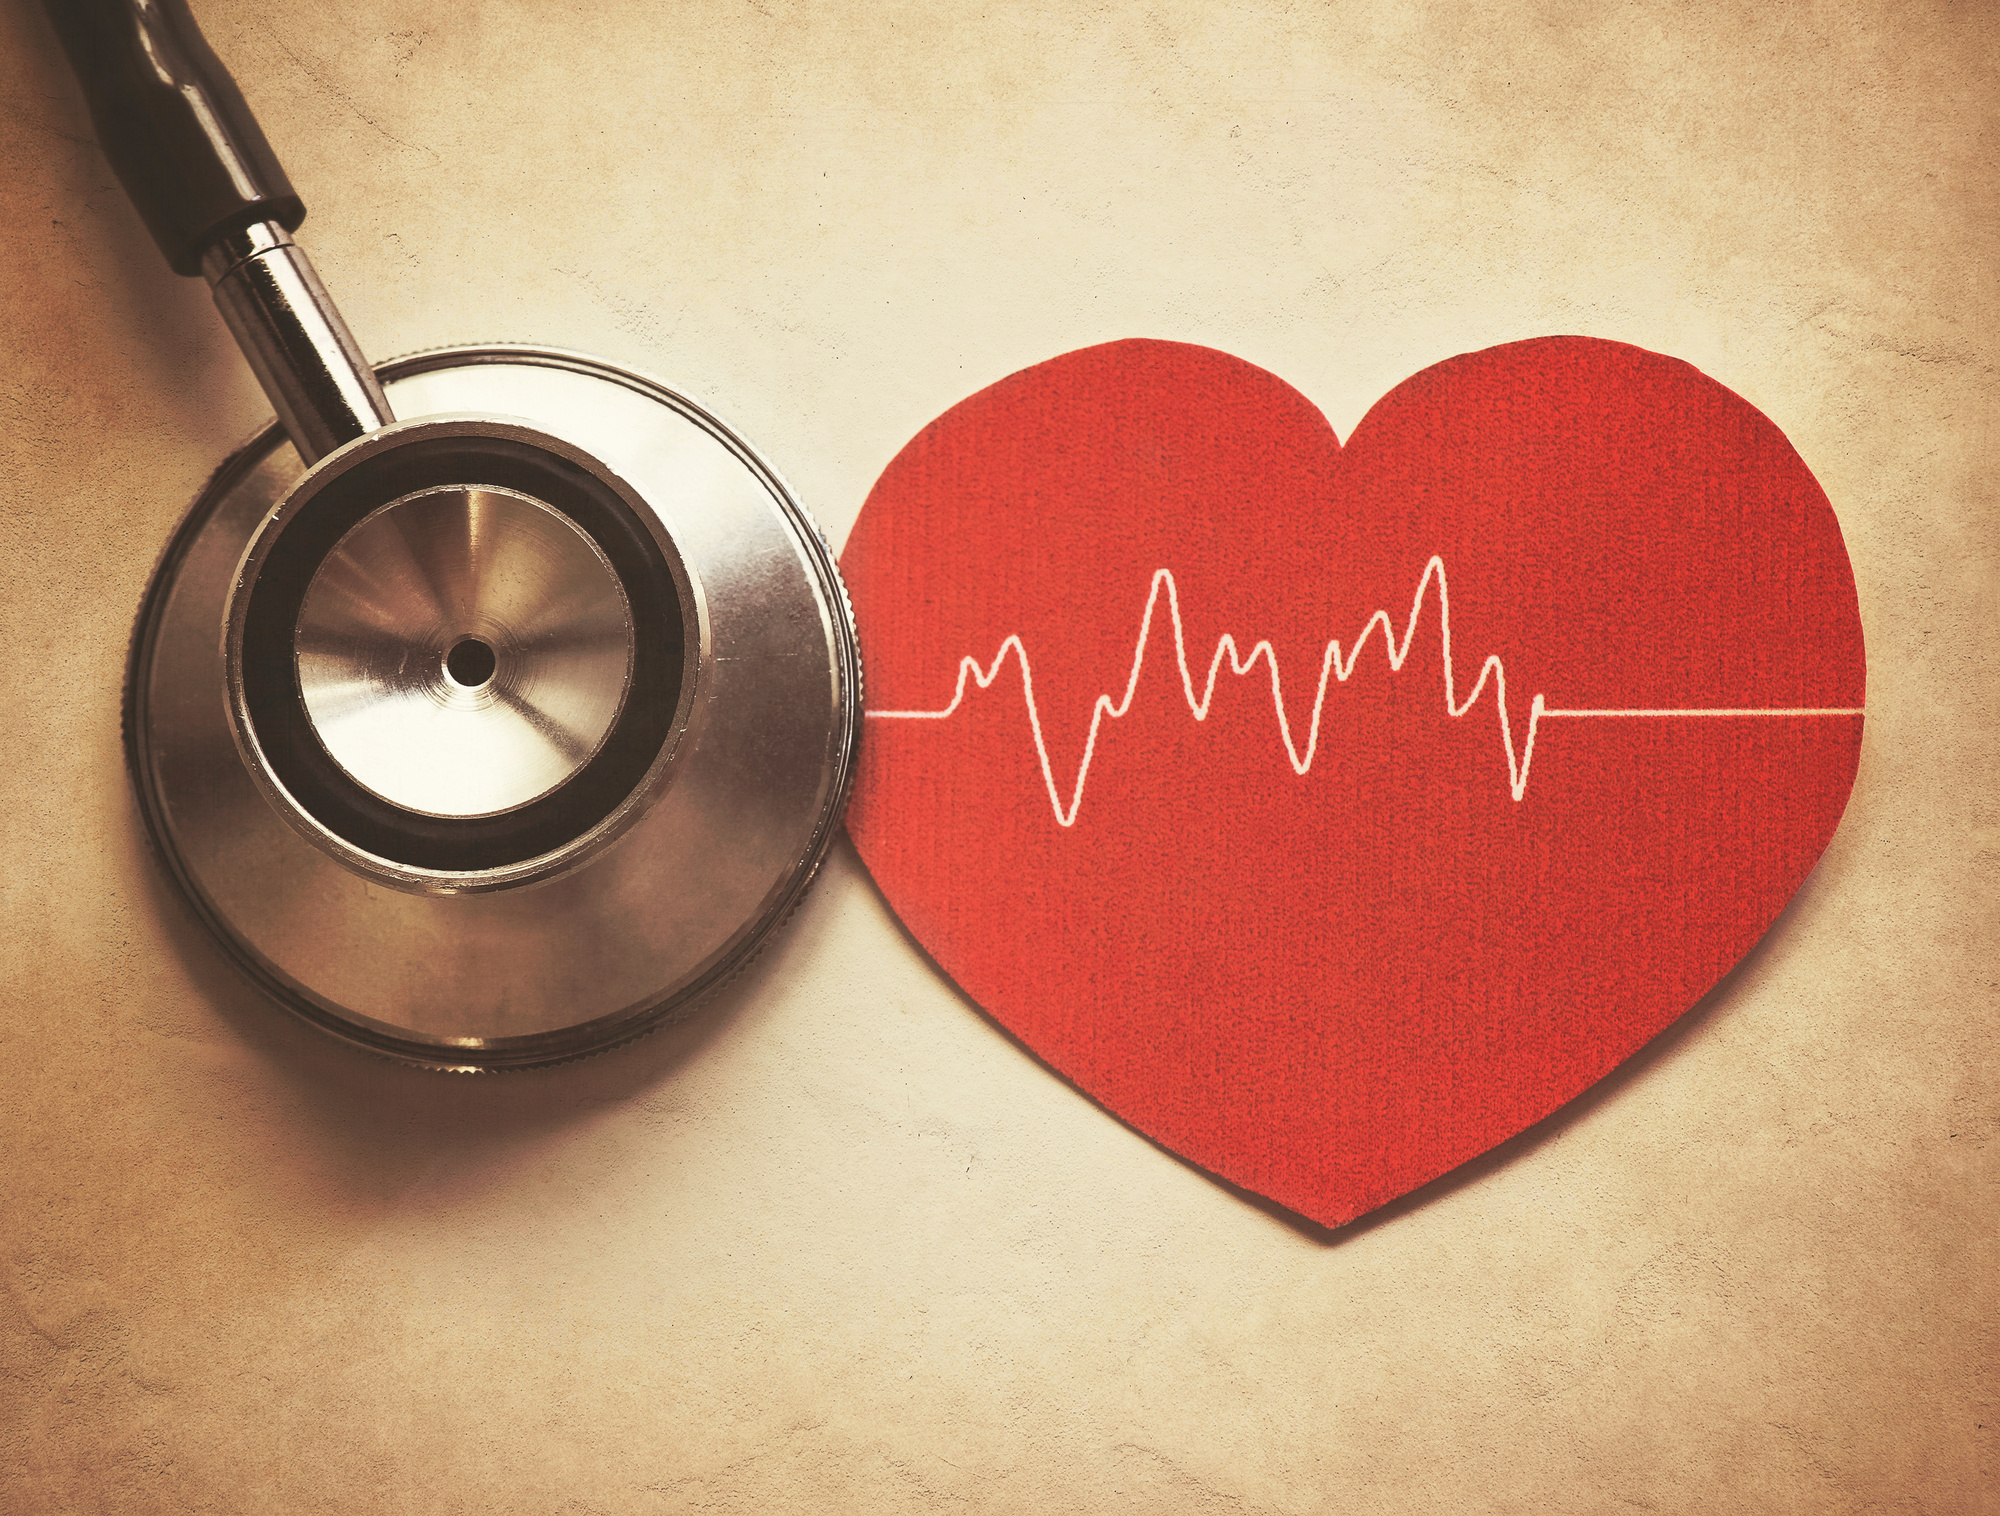 stethoscope and paper heart with heart beat symbol